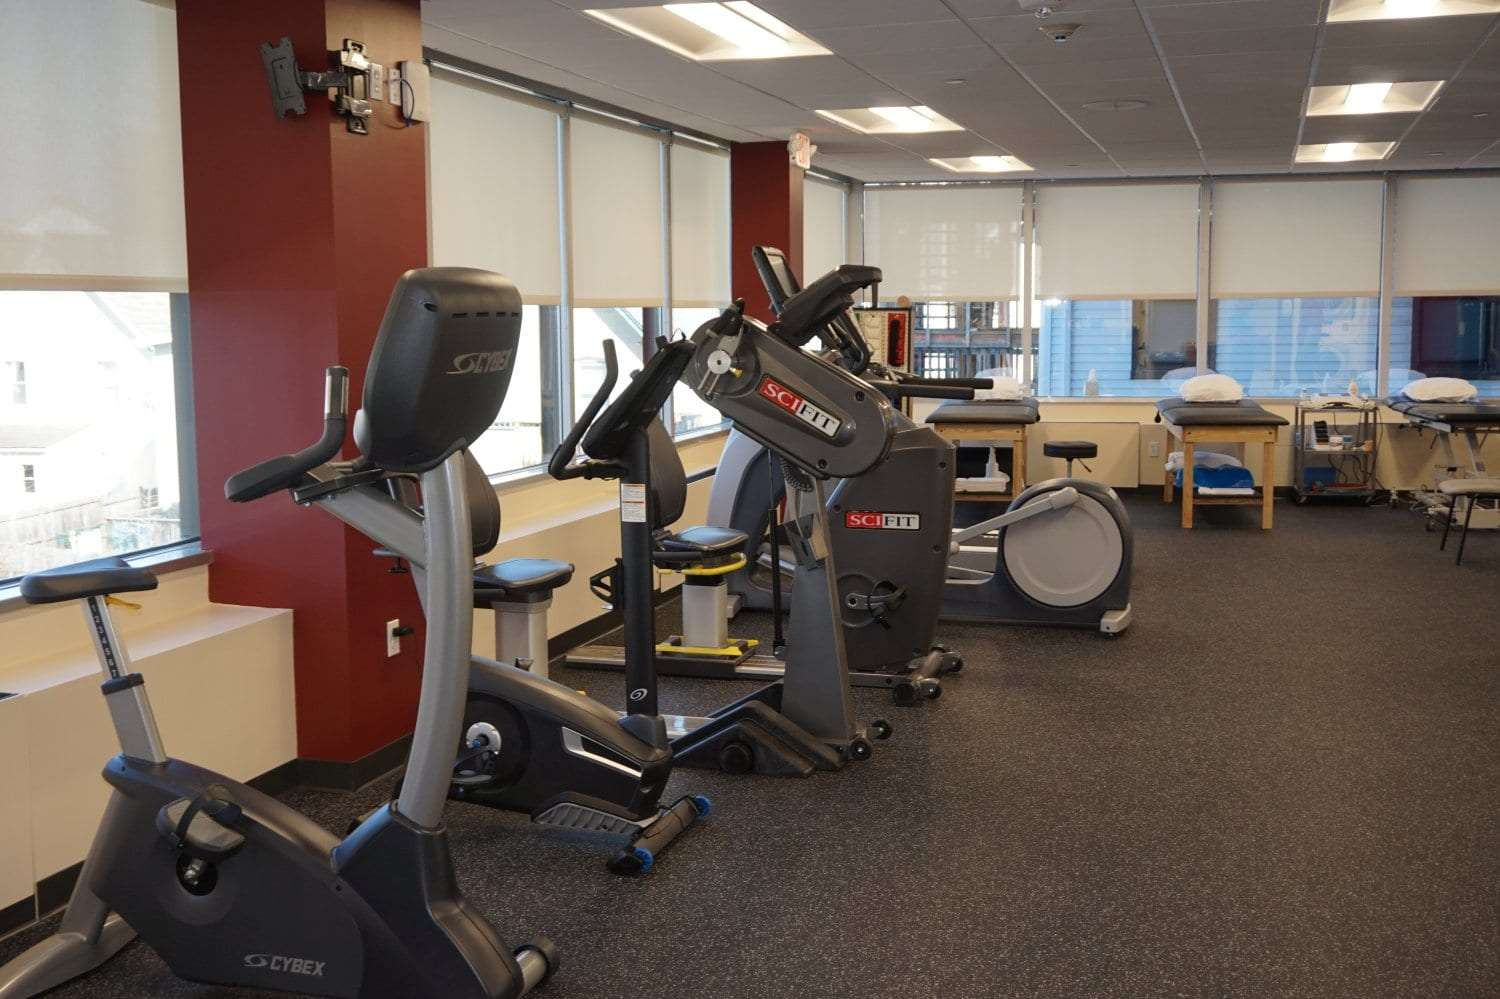 Here is a photo of equipment used at our physical therapy clinic in Stamford, Connecticut.